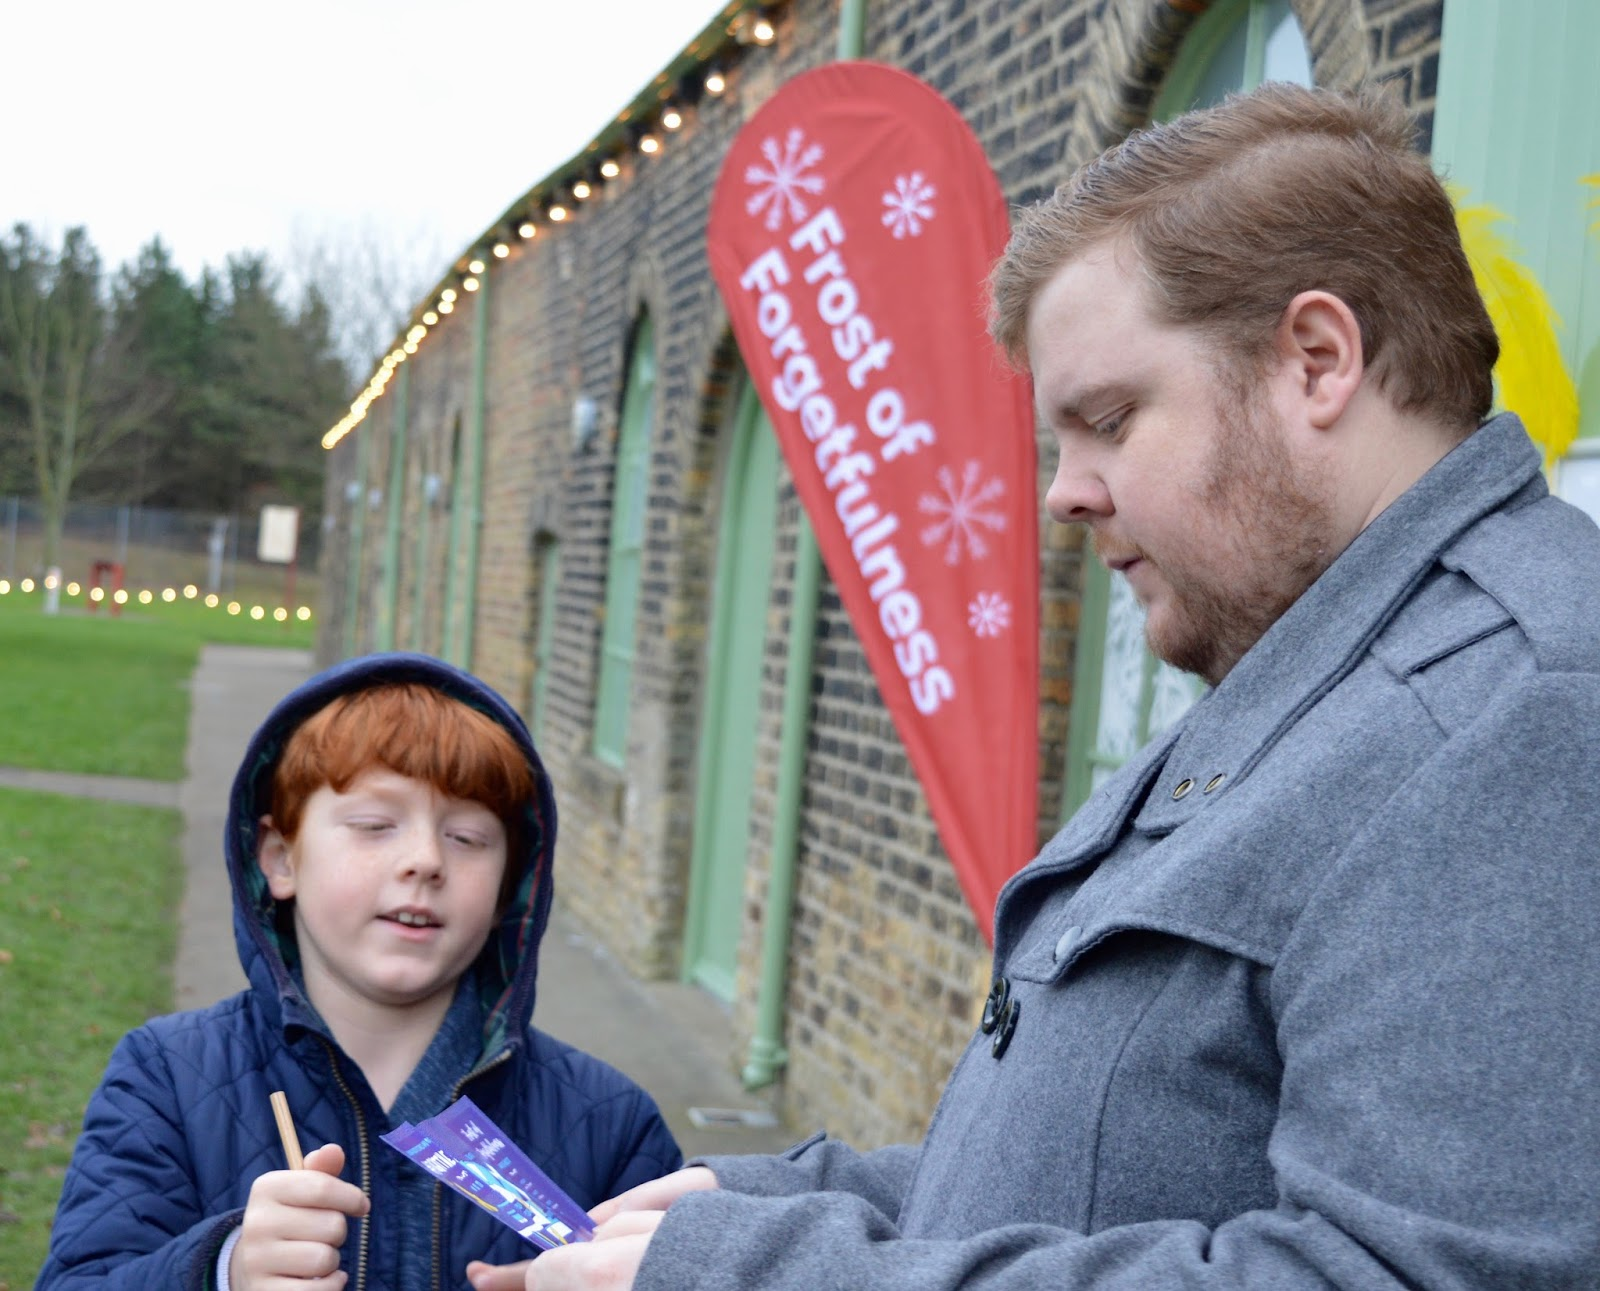 Frost of Forgetfulness | A FREE Winter Trail and activity at Woodhorn Museum in Northumberland (continues until 23rd December) - solving clues